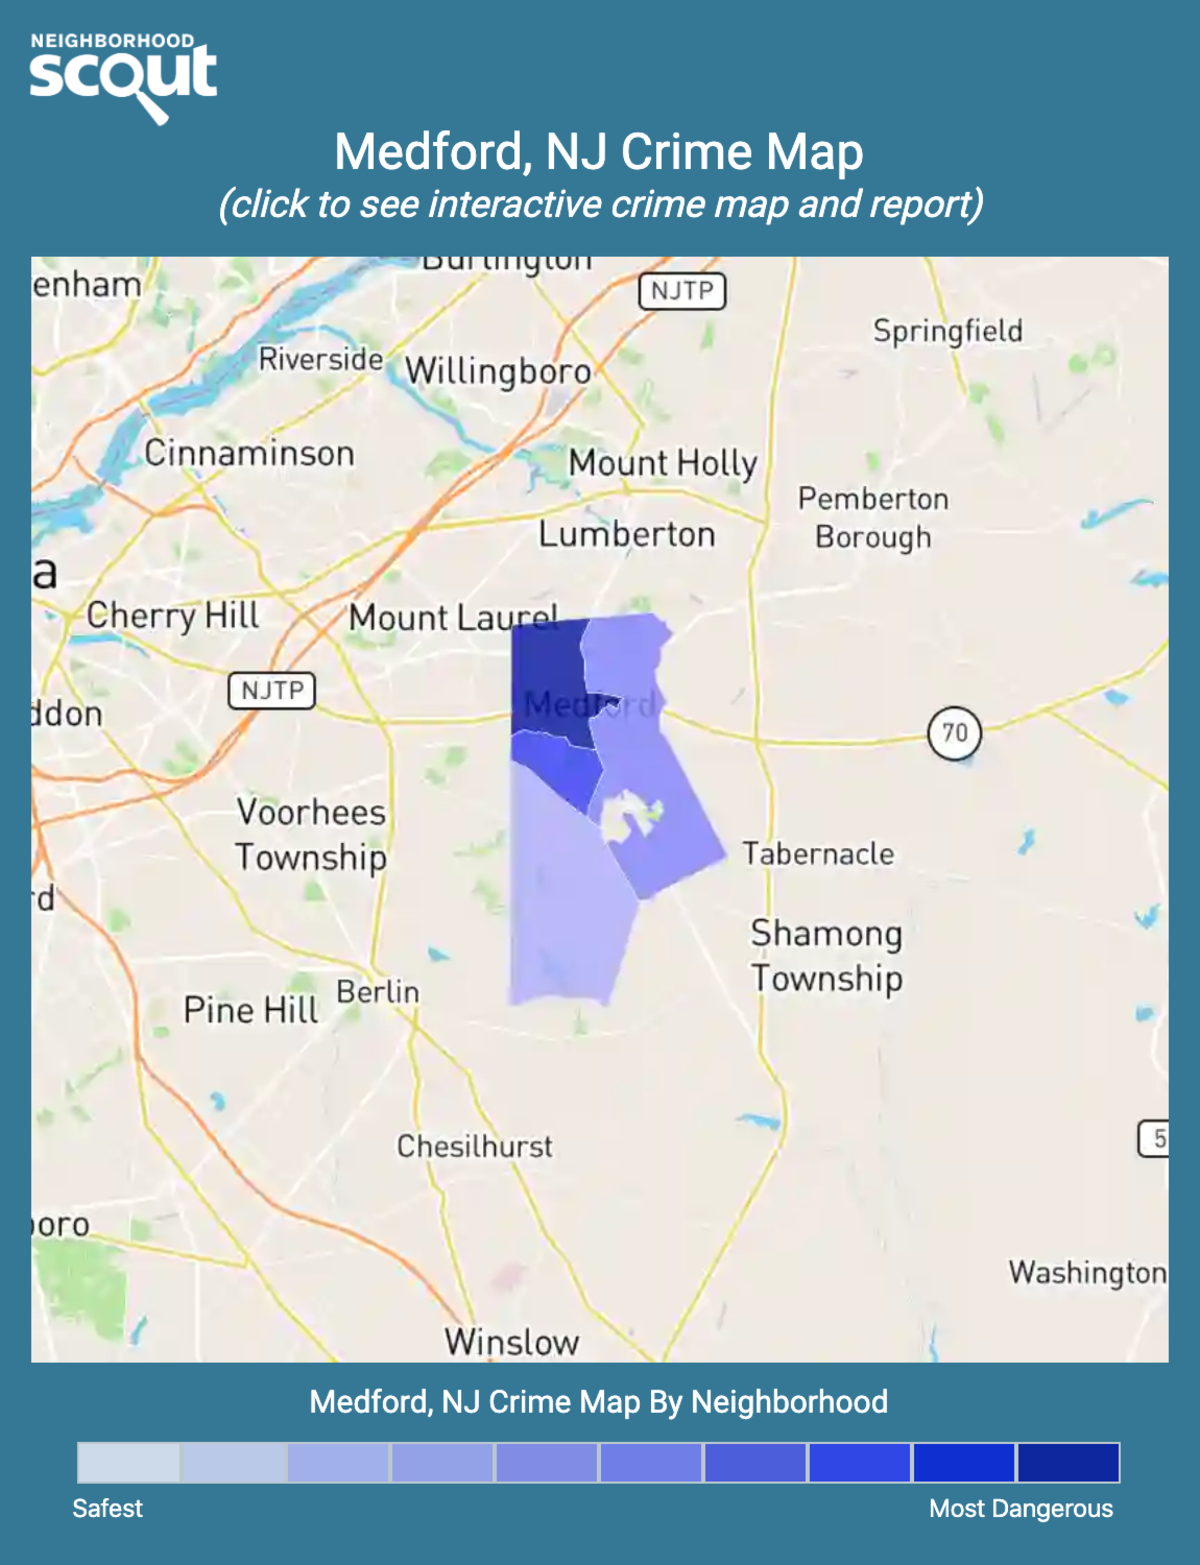 Medford, New Jersey crime map